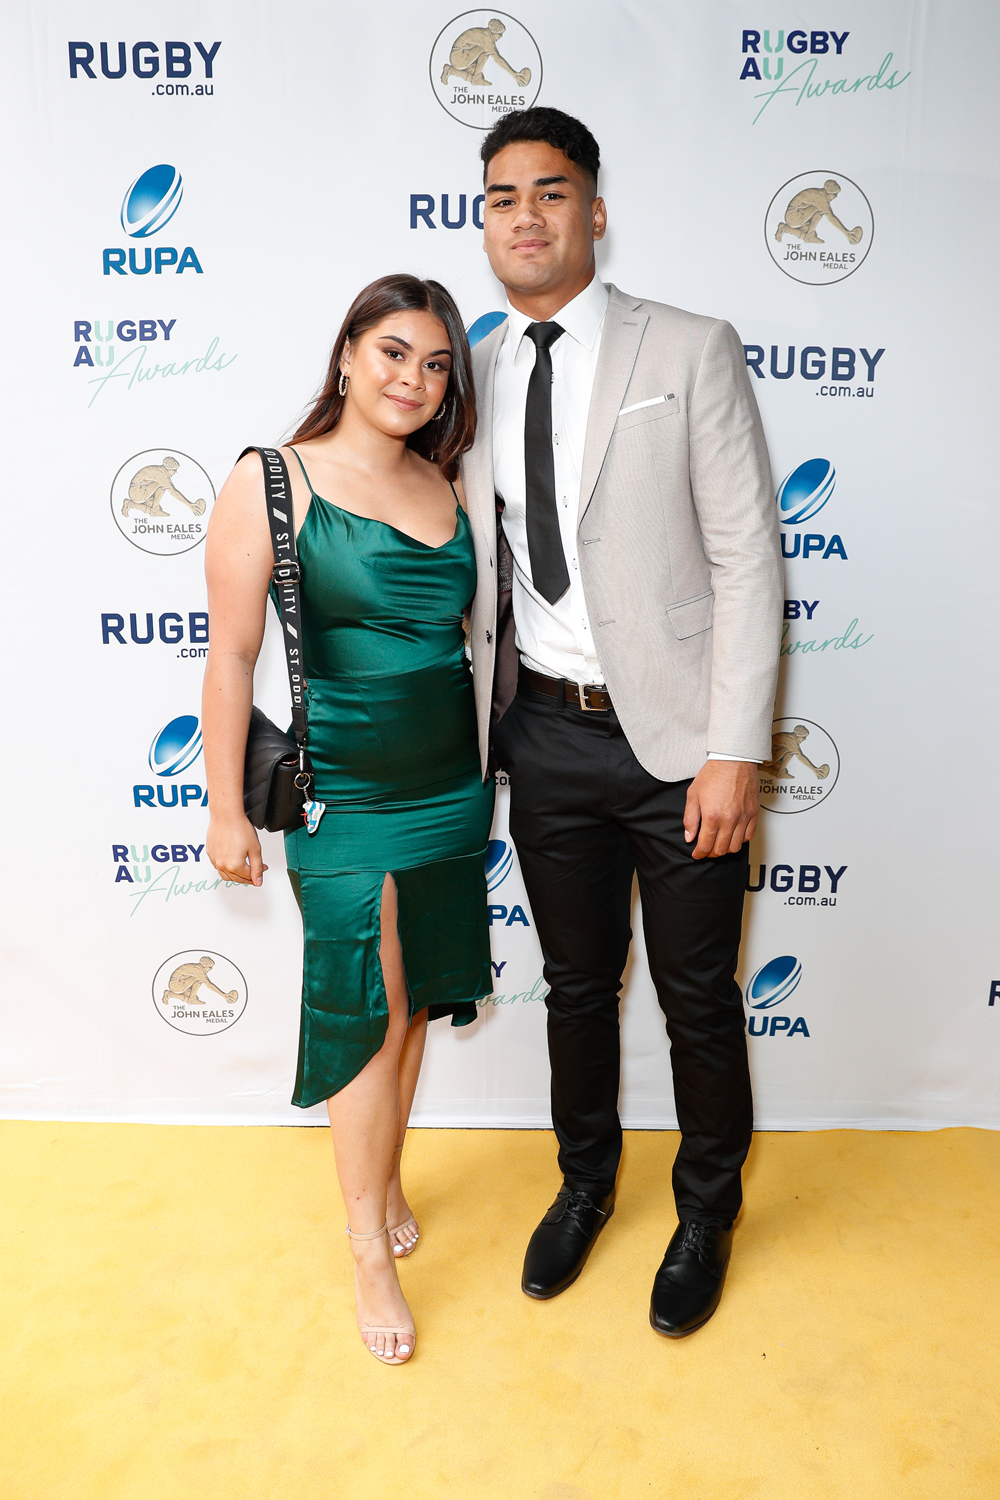 Aussie Sevens youngster Jeral Skelton and his partner arriving at the Rugby Australia Awards. Photo: Getty Images